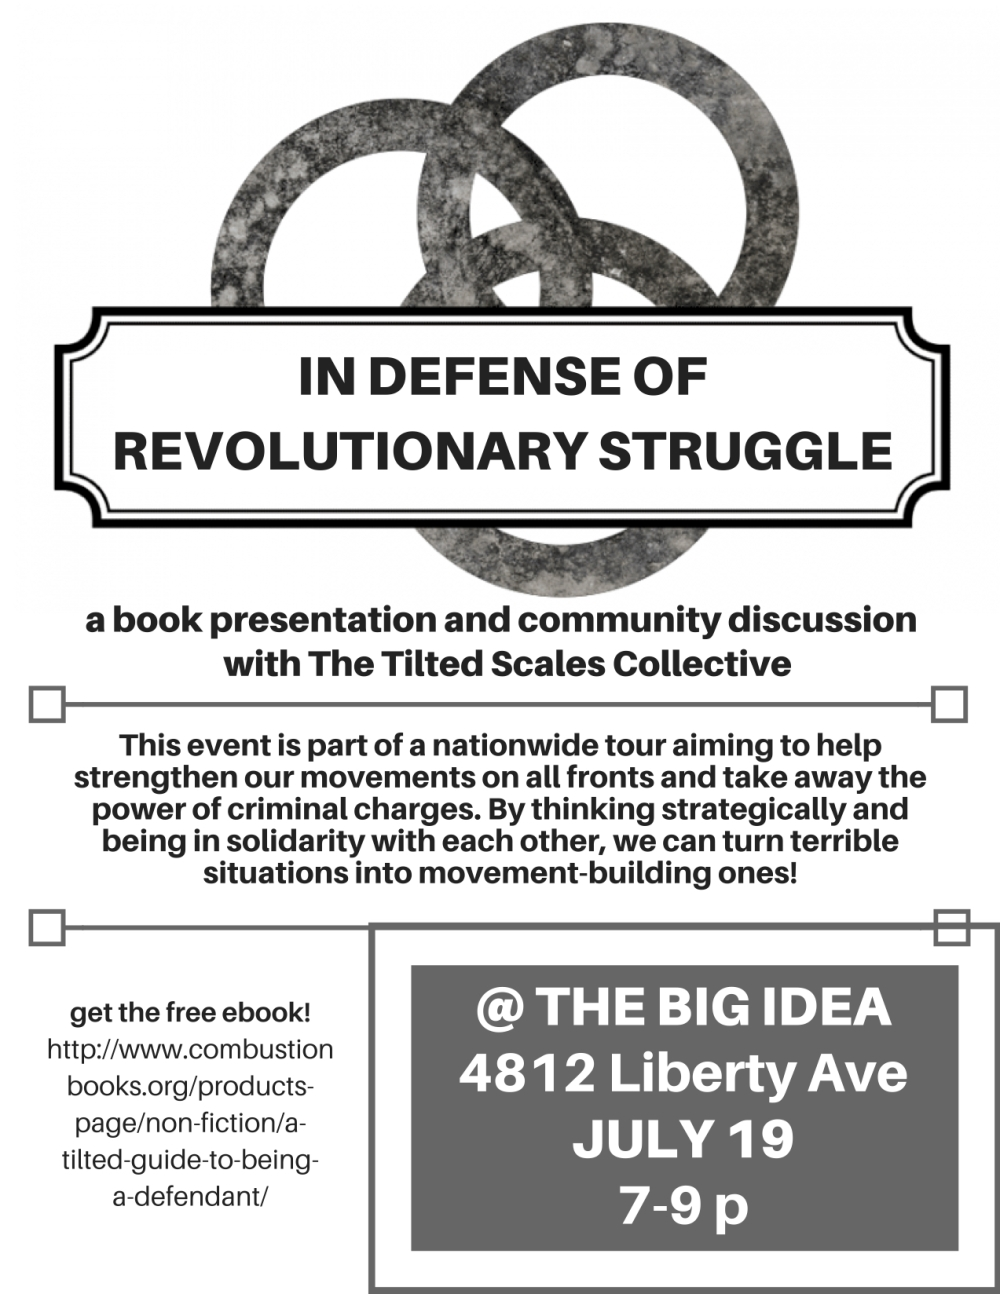 IN-DEFENSE-OF-REVOLUTIONARY-STRUGGLE-flyer-with-edits